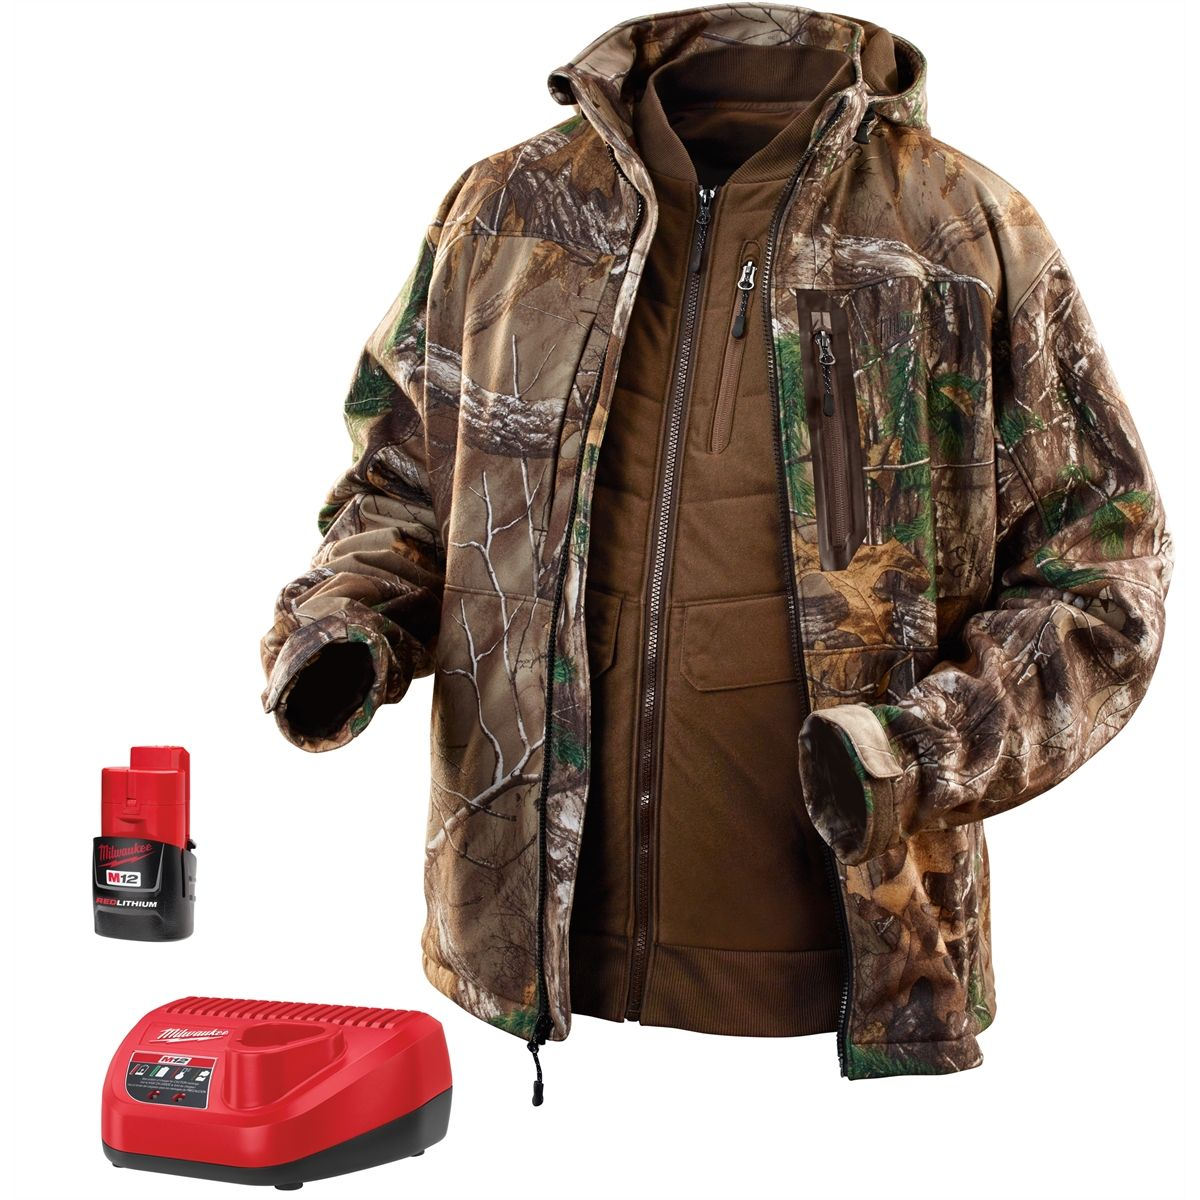 M12 Heated Jacket M12 Realtree Xtra Camo 3 In 1 Heat Jacket Kit 2x